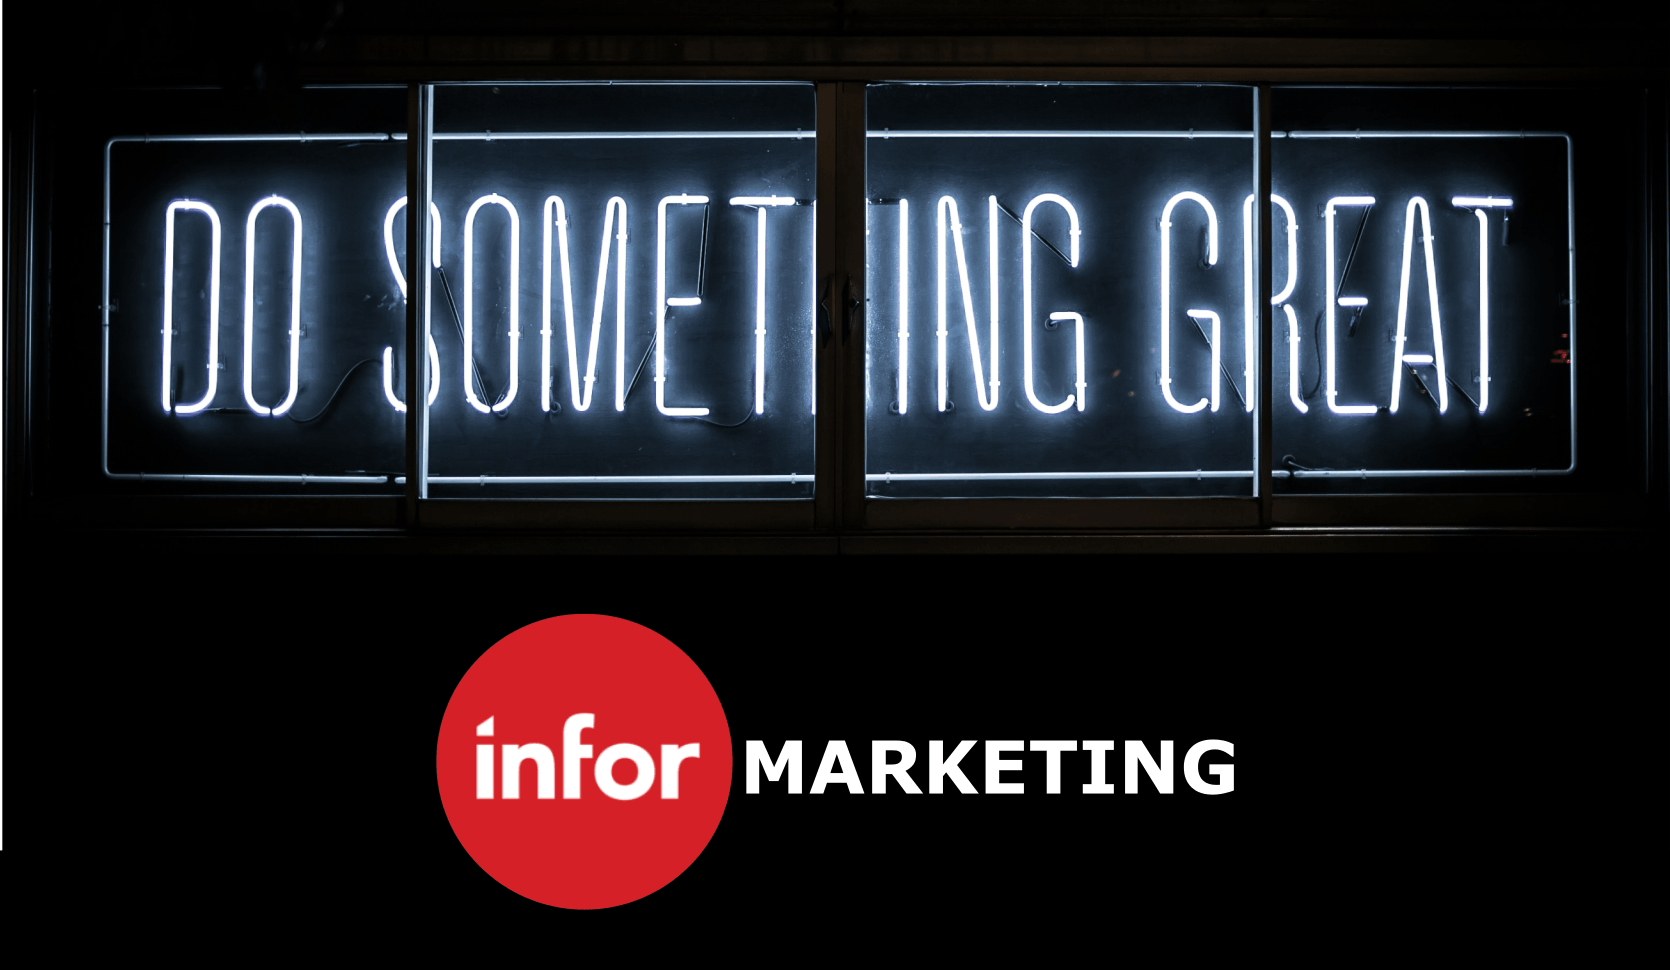 iNFOR mARKETING bANNER